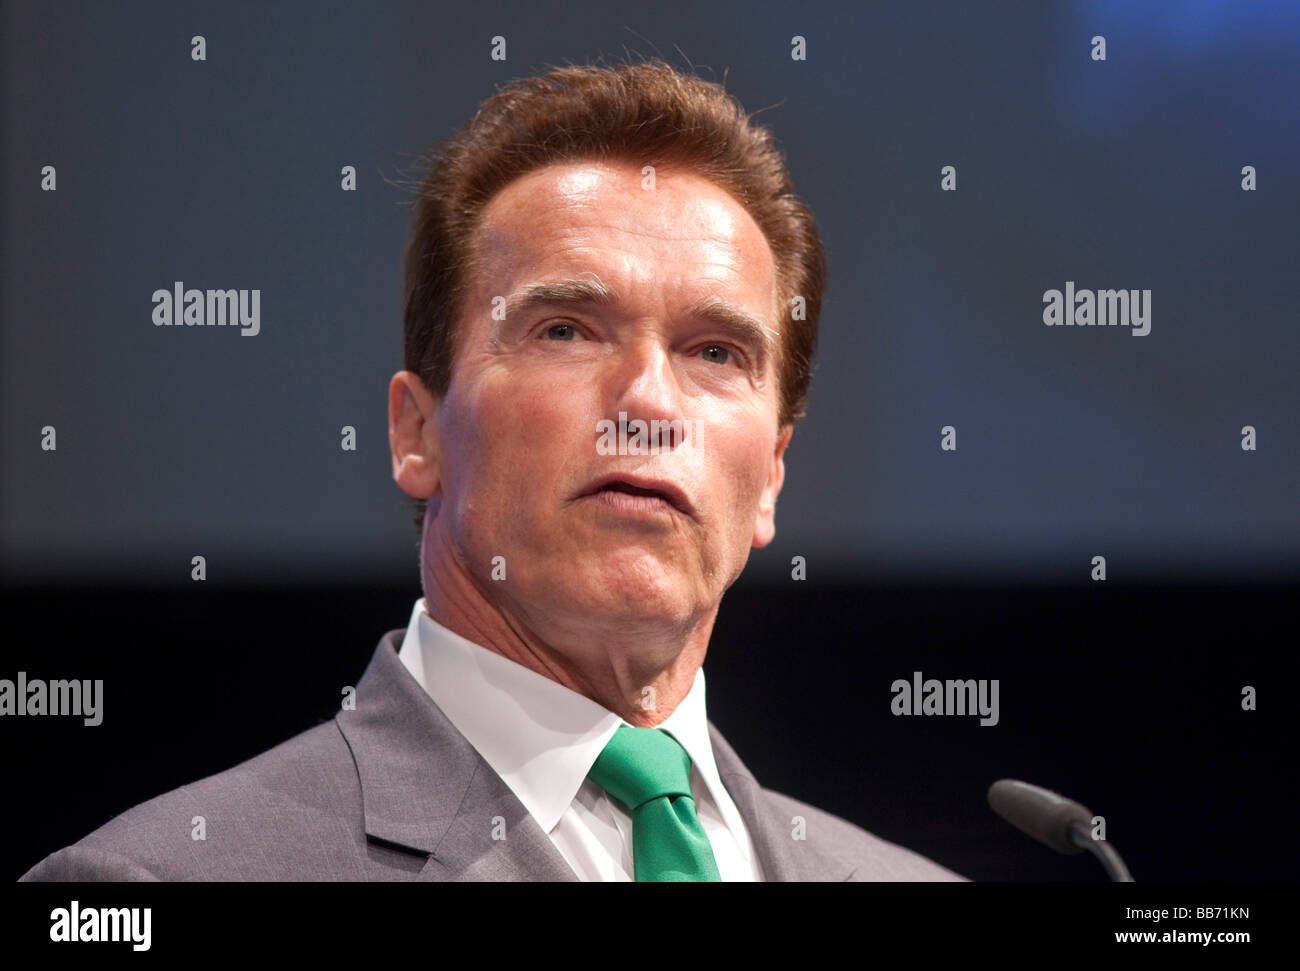 Arnold Schwarzenegger, gouverneur de l'état de Californie Photo Stock